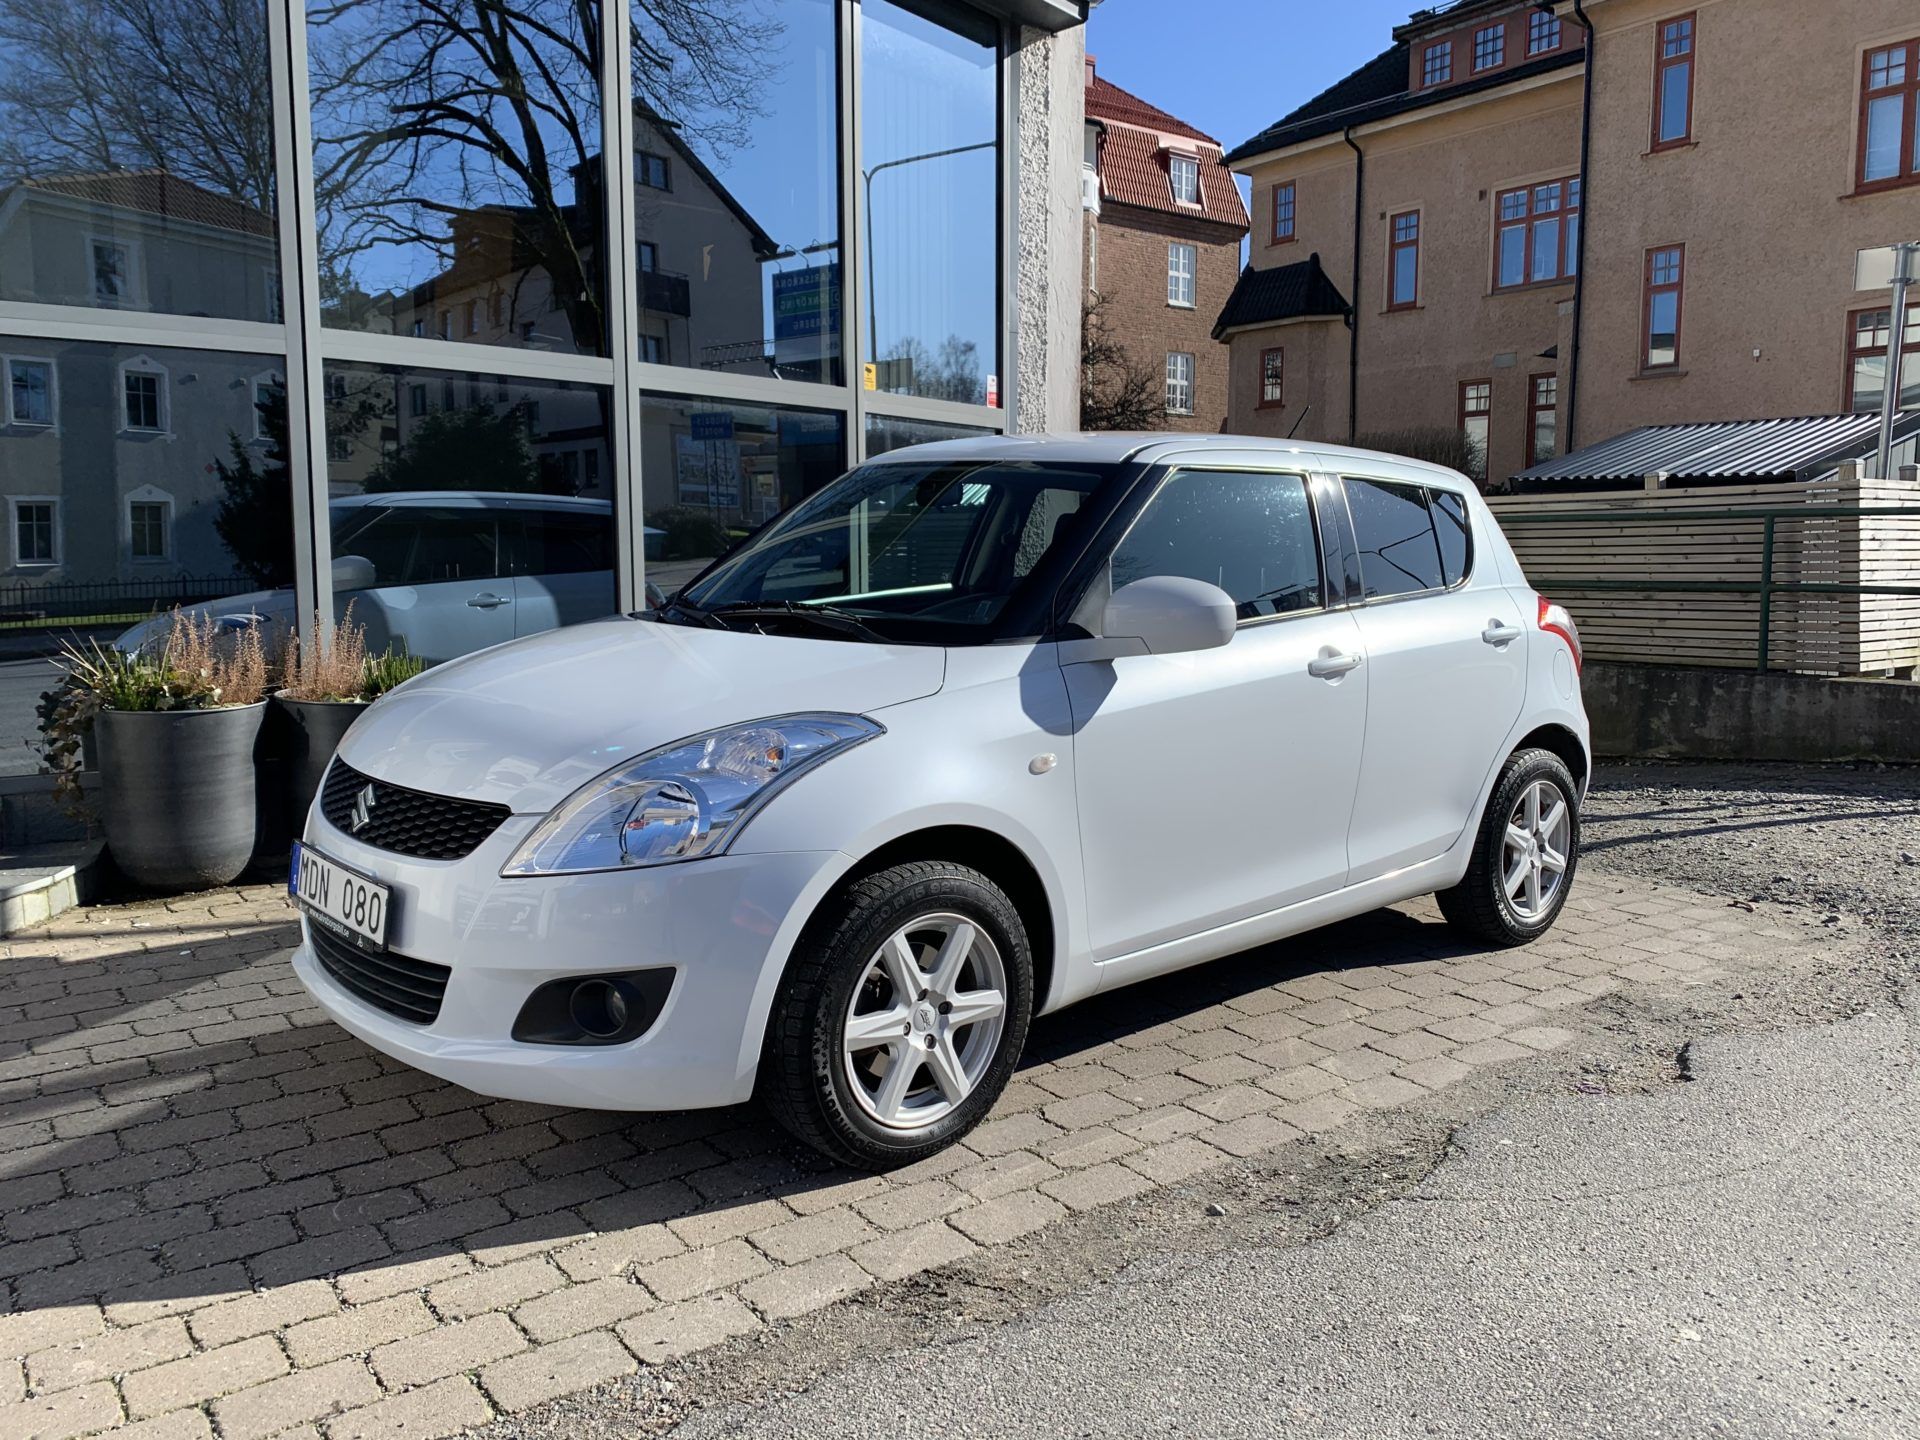 Suzuki Swift 1.2 VVT 4WD Exclusive 94hk